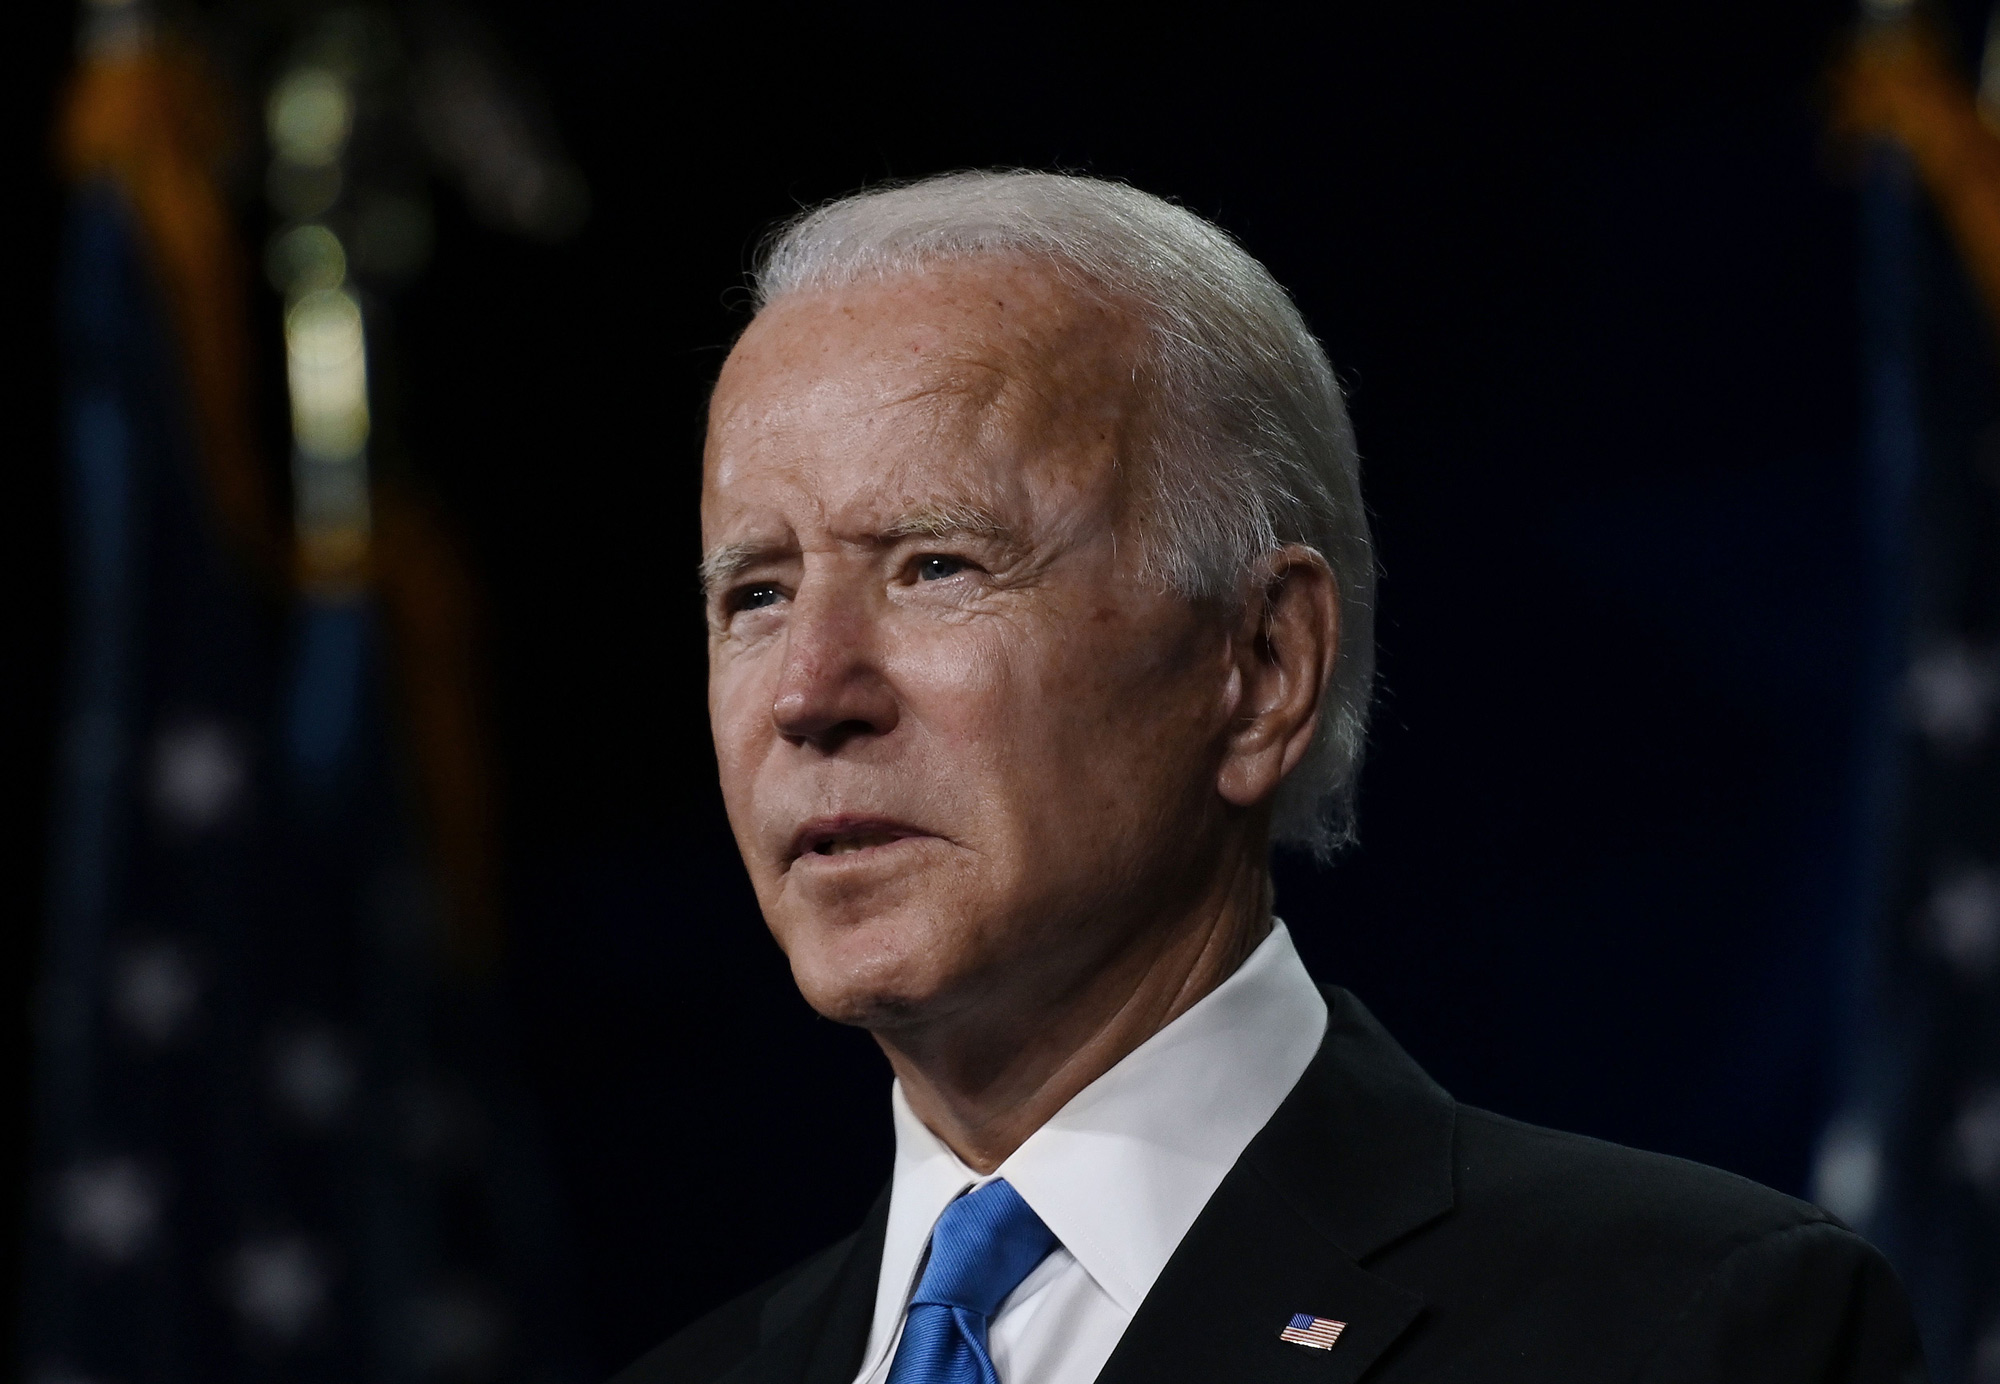 Former vice-president and Democratic presidential nominee Joe Biden speaks during the Democratic National Convention at the Chase Center in Wilmington, Delaware, on August 20.